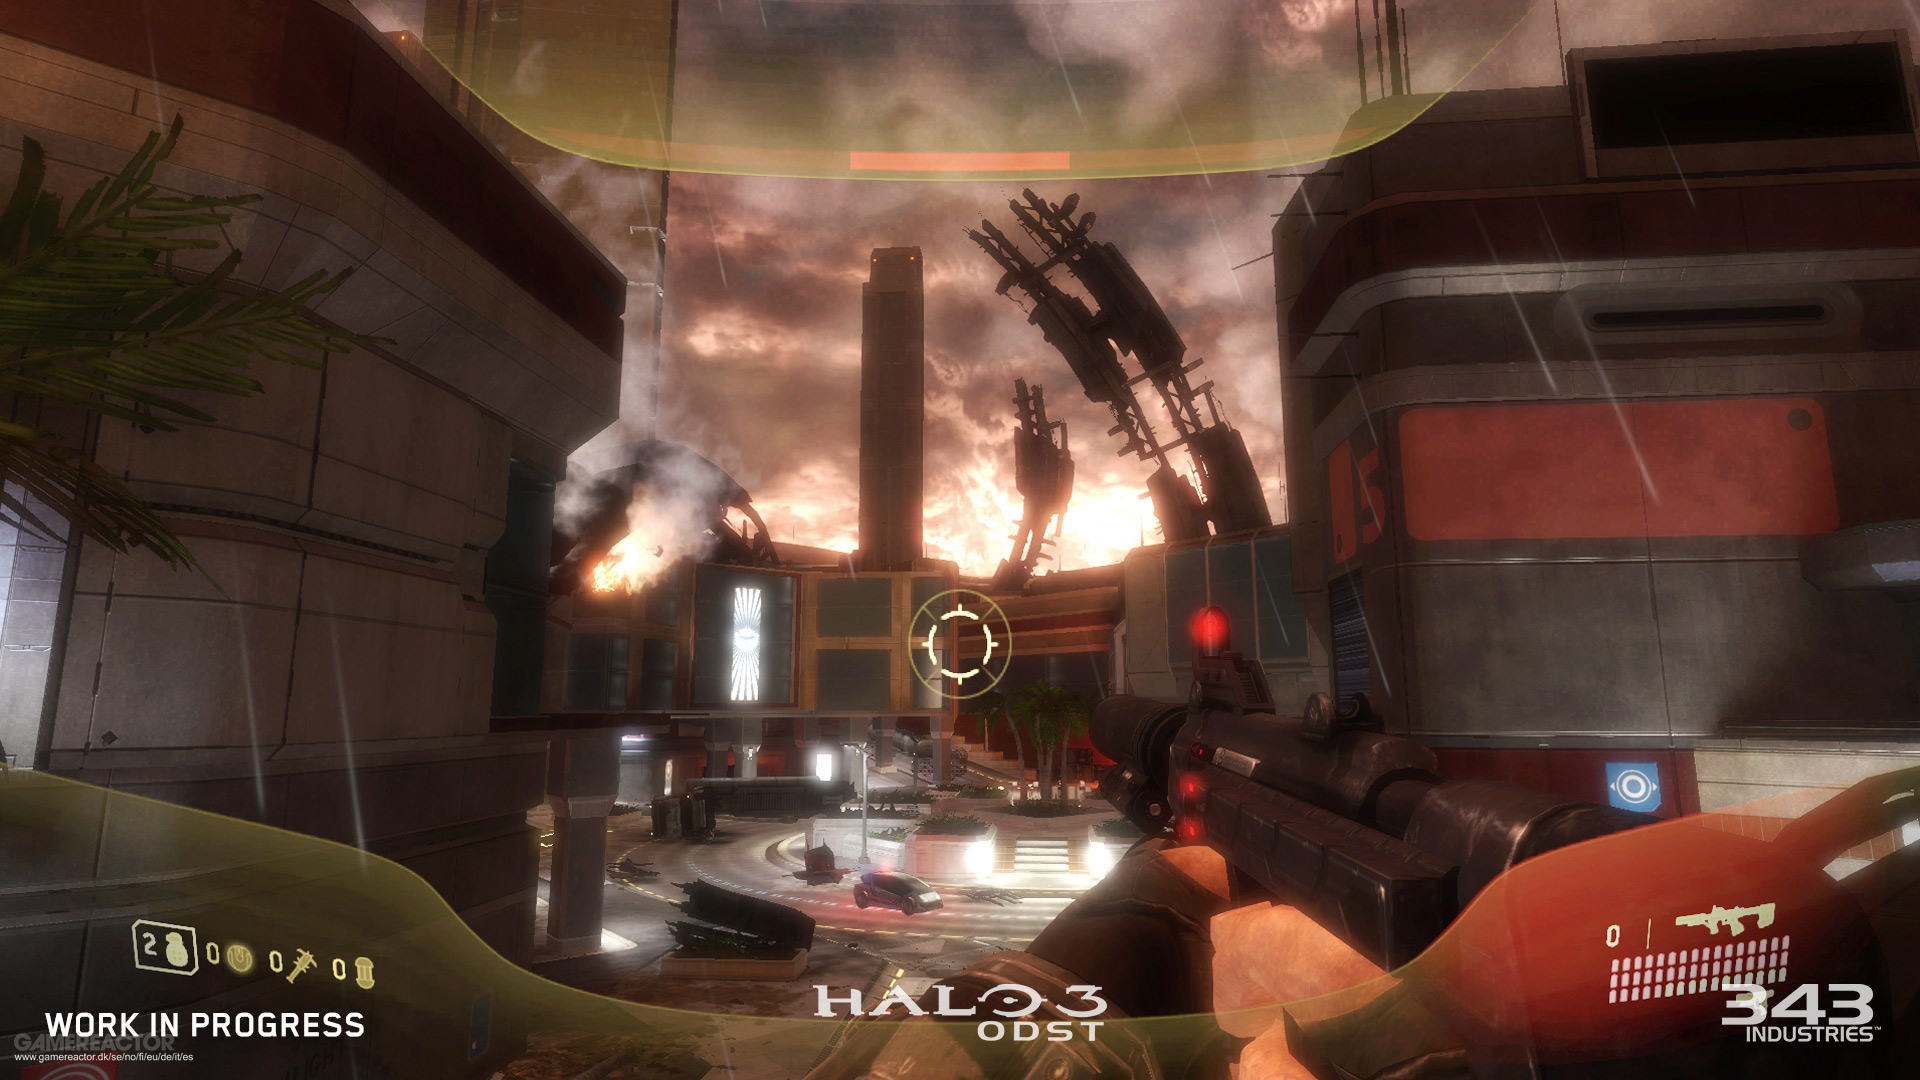 Pictures of First screenshot from the remastered Halo 3: ODST 1/2